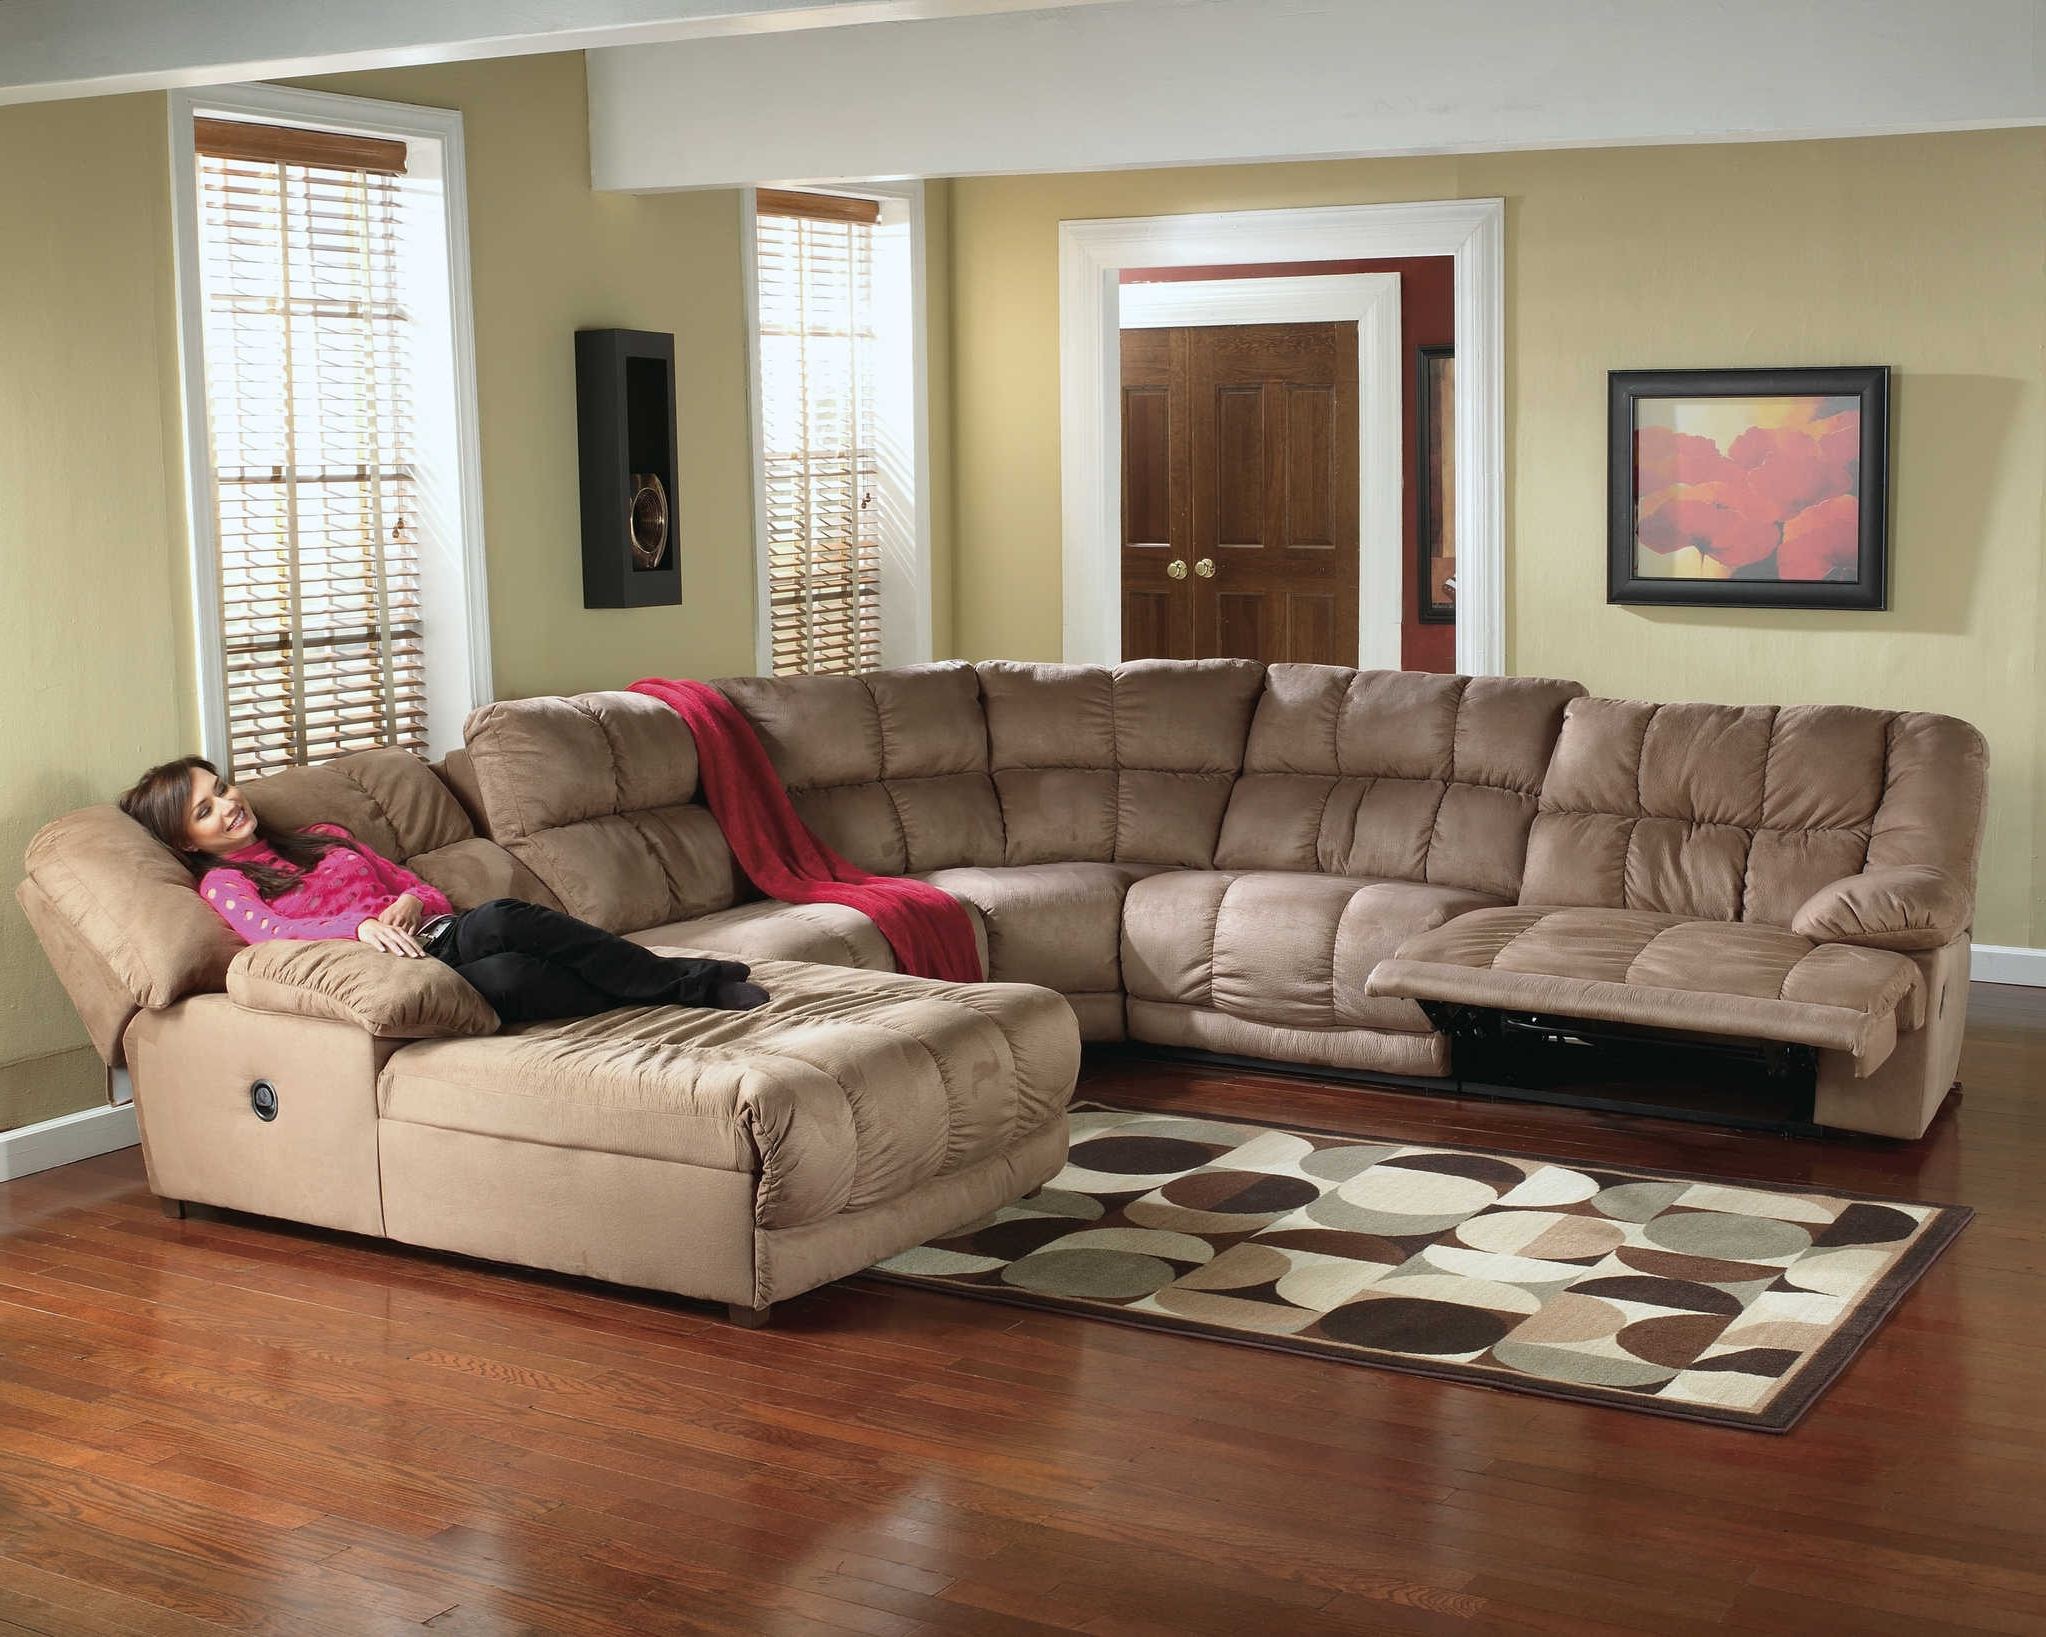 Most Recent Astonishing Sectional Sofas With Chaise And Recliner 31 About Pertaining To Las Vegas Sectional Sofas (View 12 of 20)